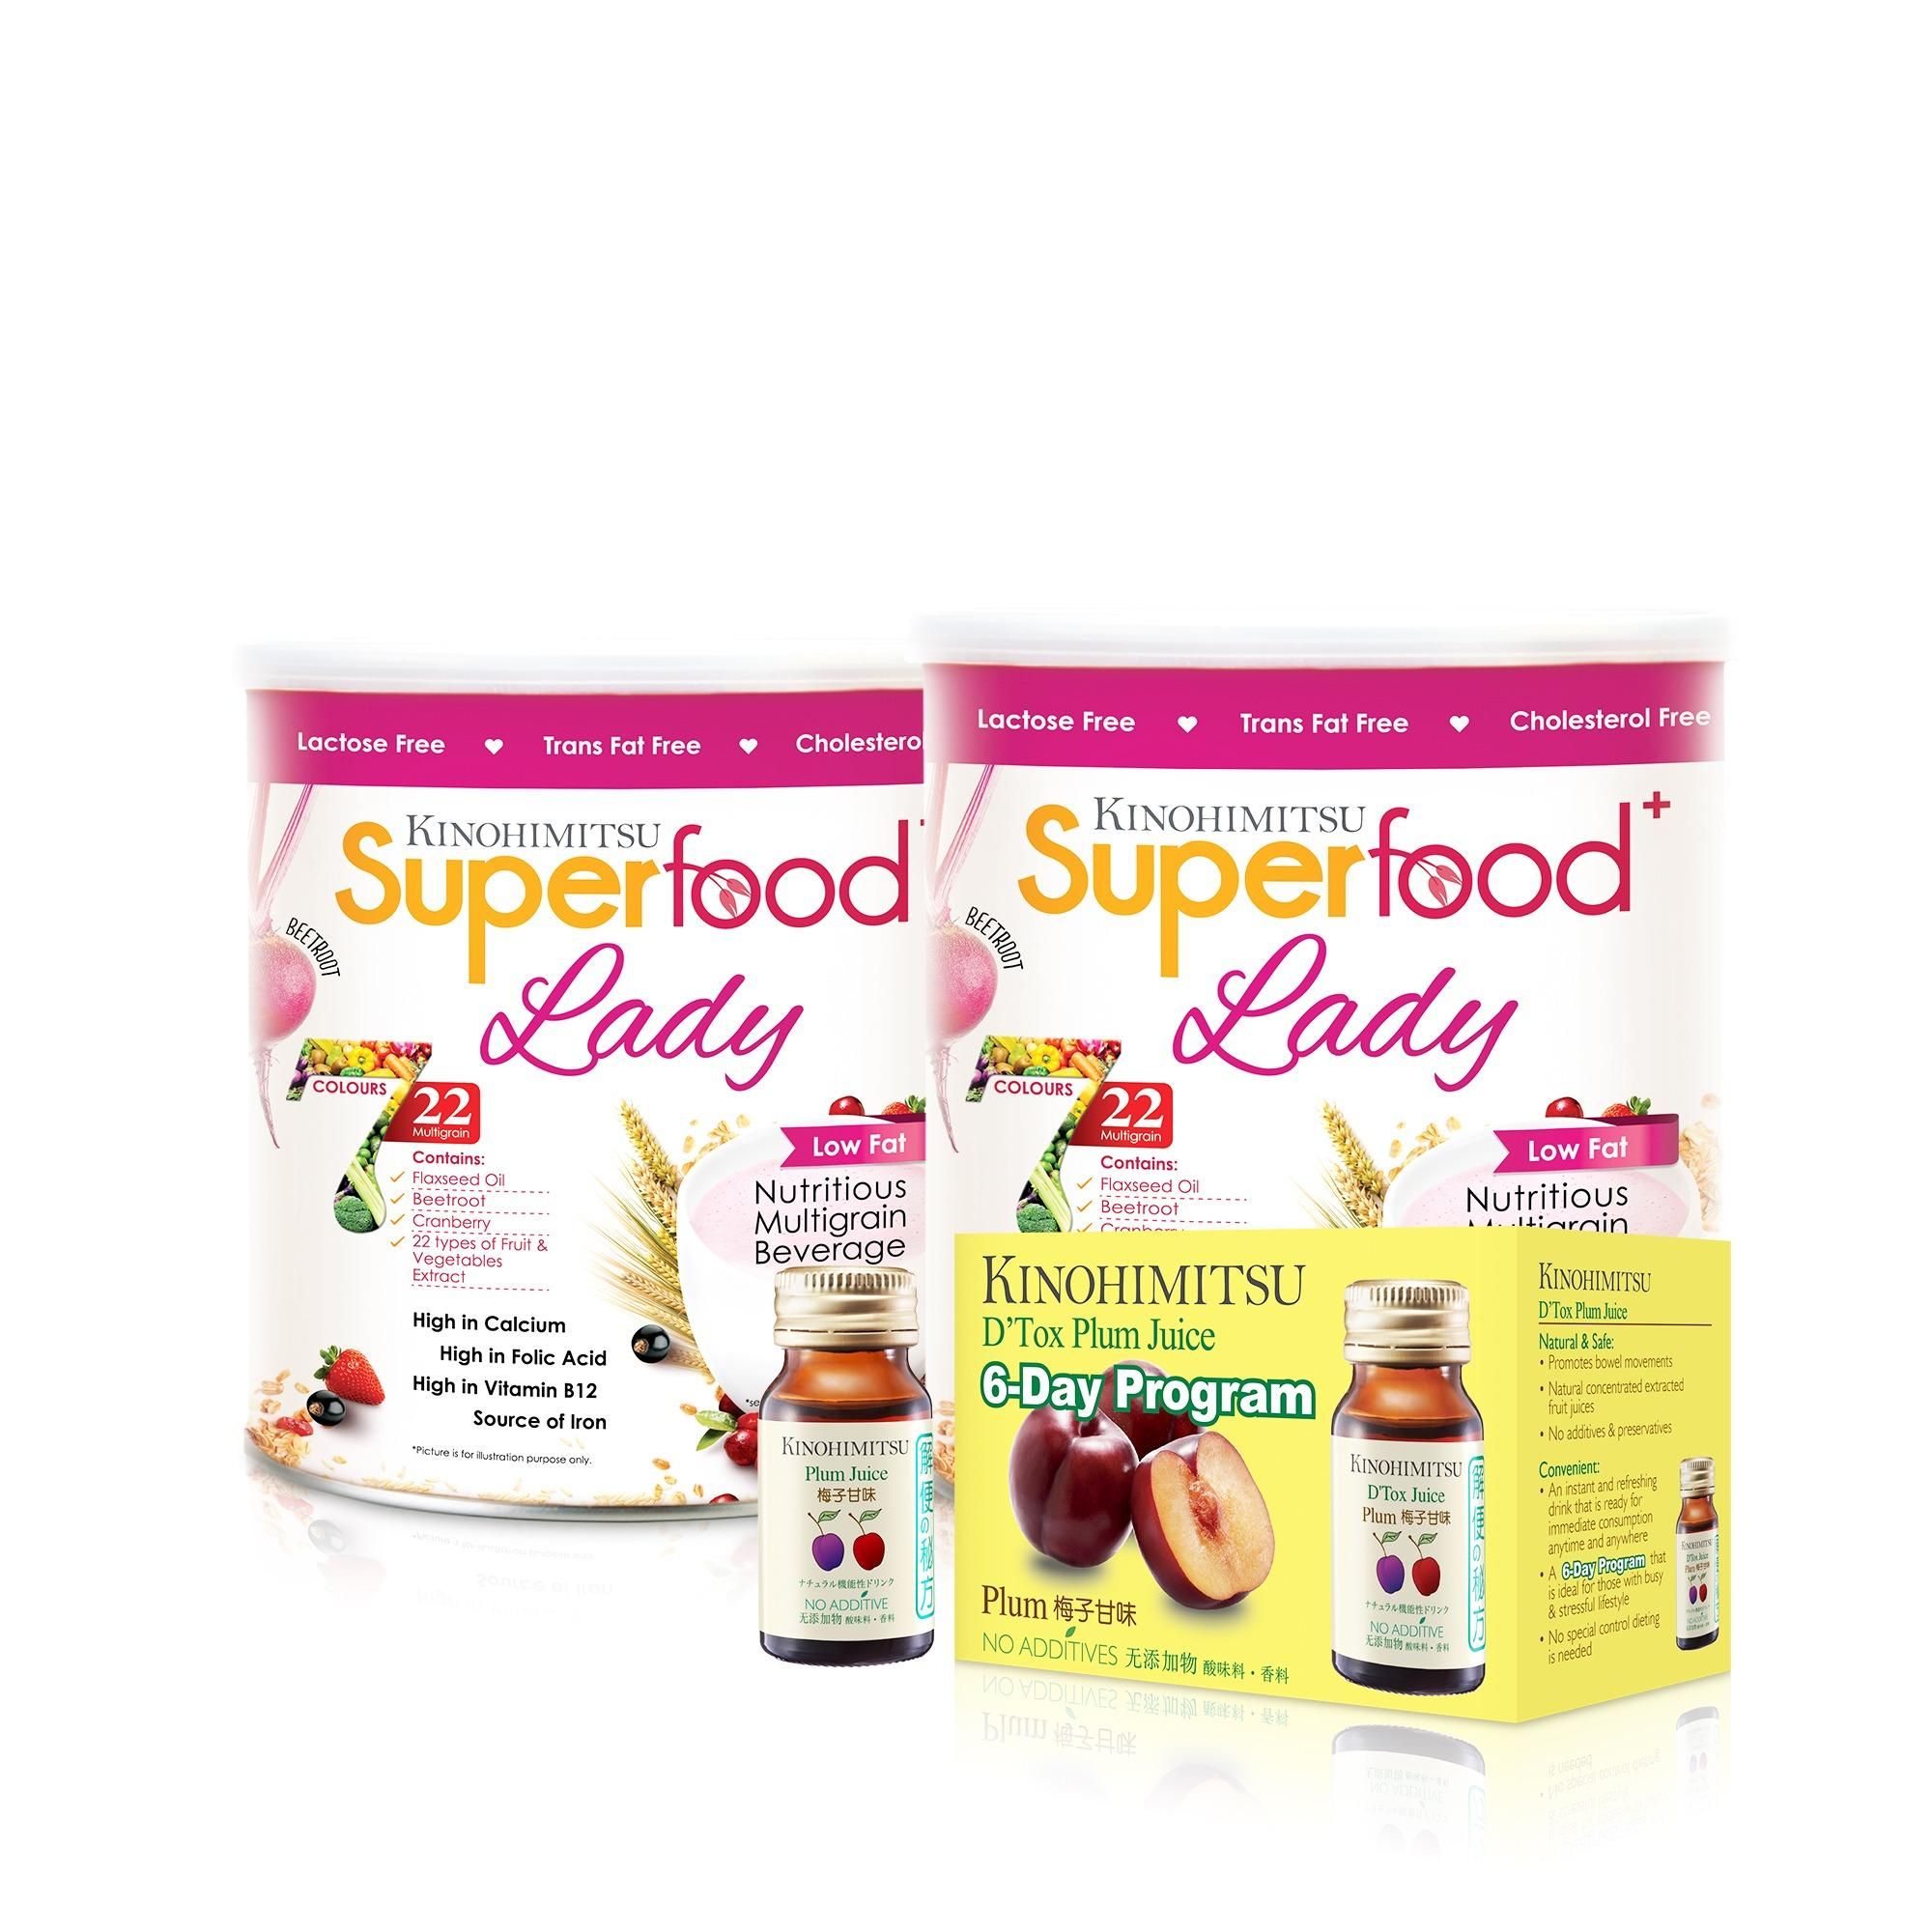 Kinohimitsu Superfood+ Lady 500g x 2 + Plum Juice 6's